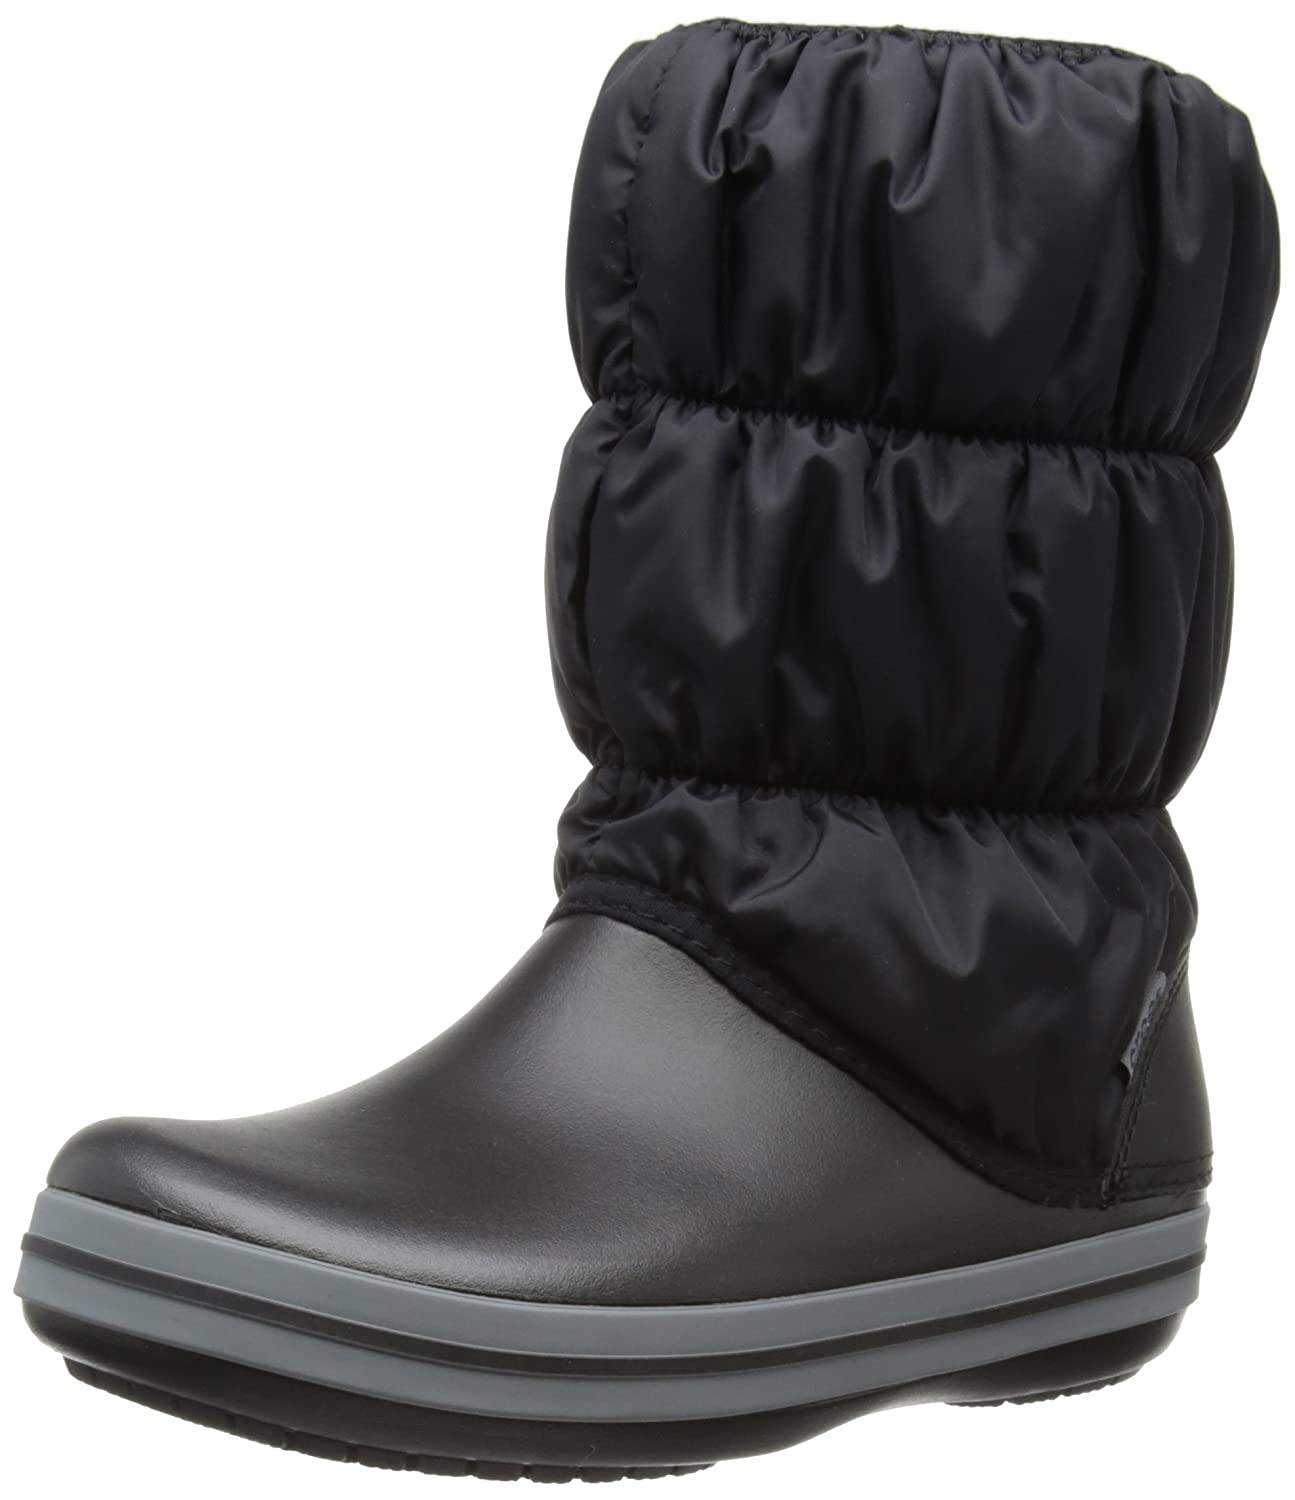 Crocs Women, Winter Puff Boot 19281 Women, Bottes Noir de Neige Femme Noir (Black/Charcoal) a206111 - reprogrammed.space